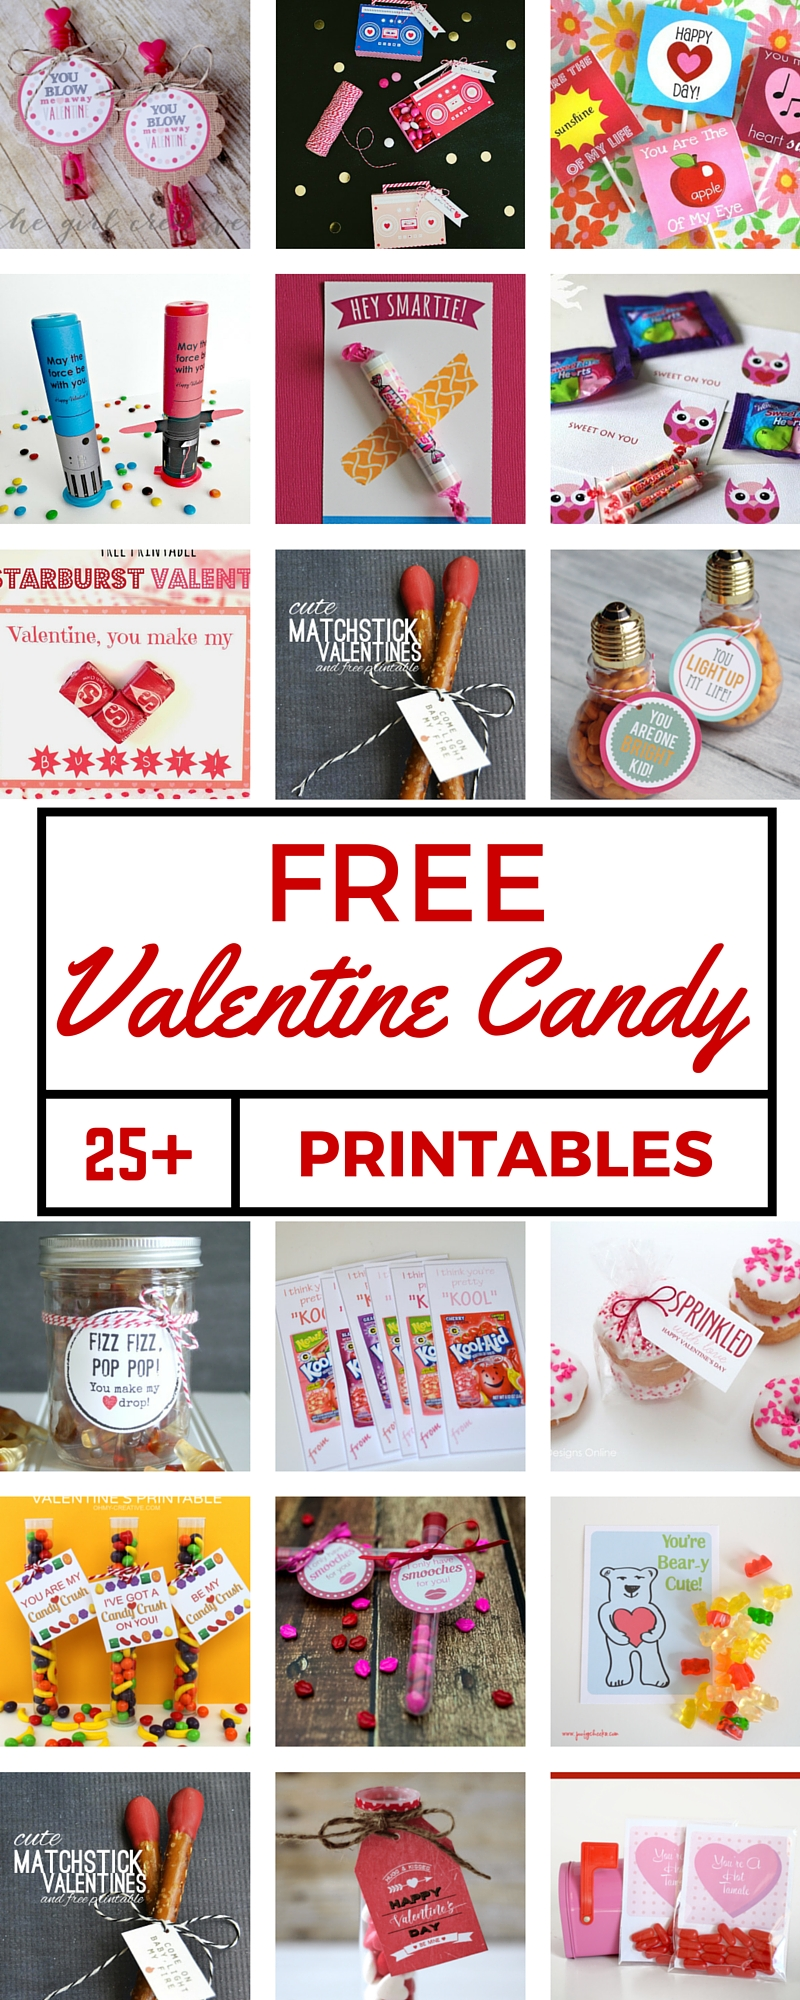 25 free valentine candy printables the crafty blog stalker